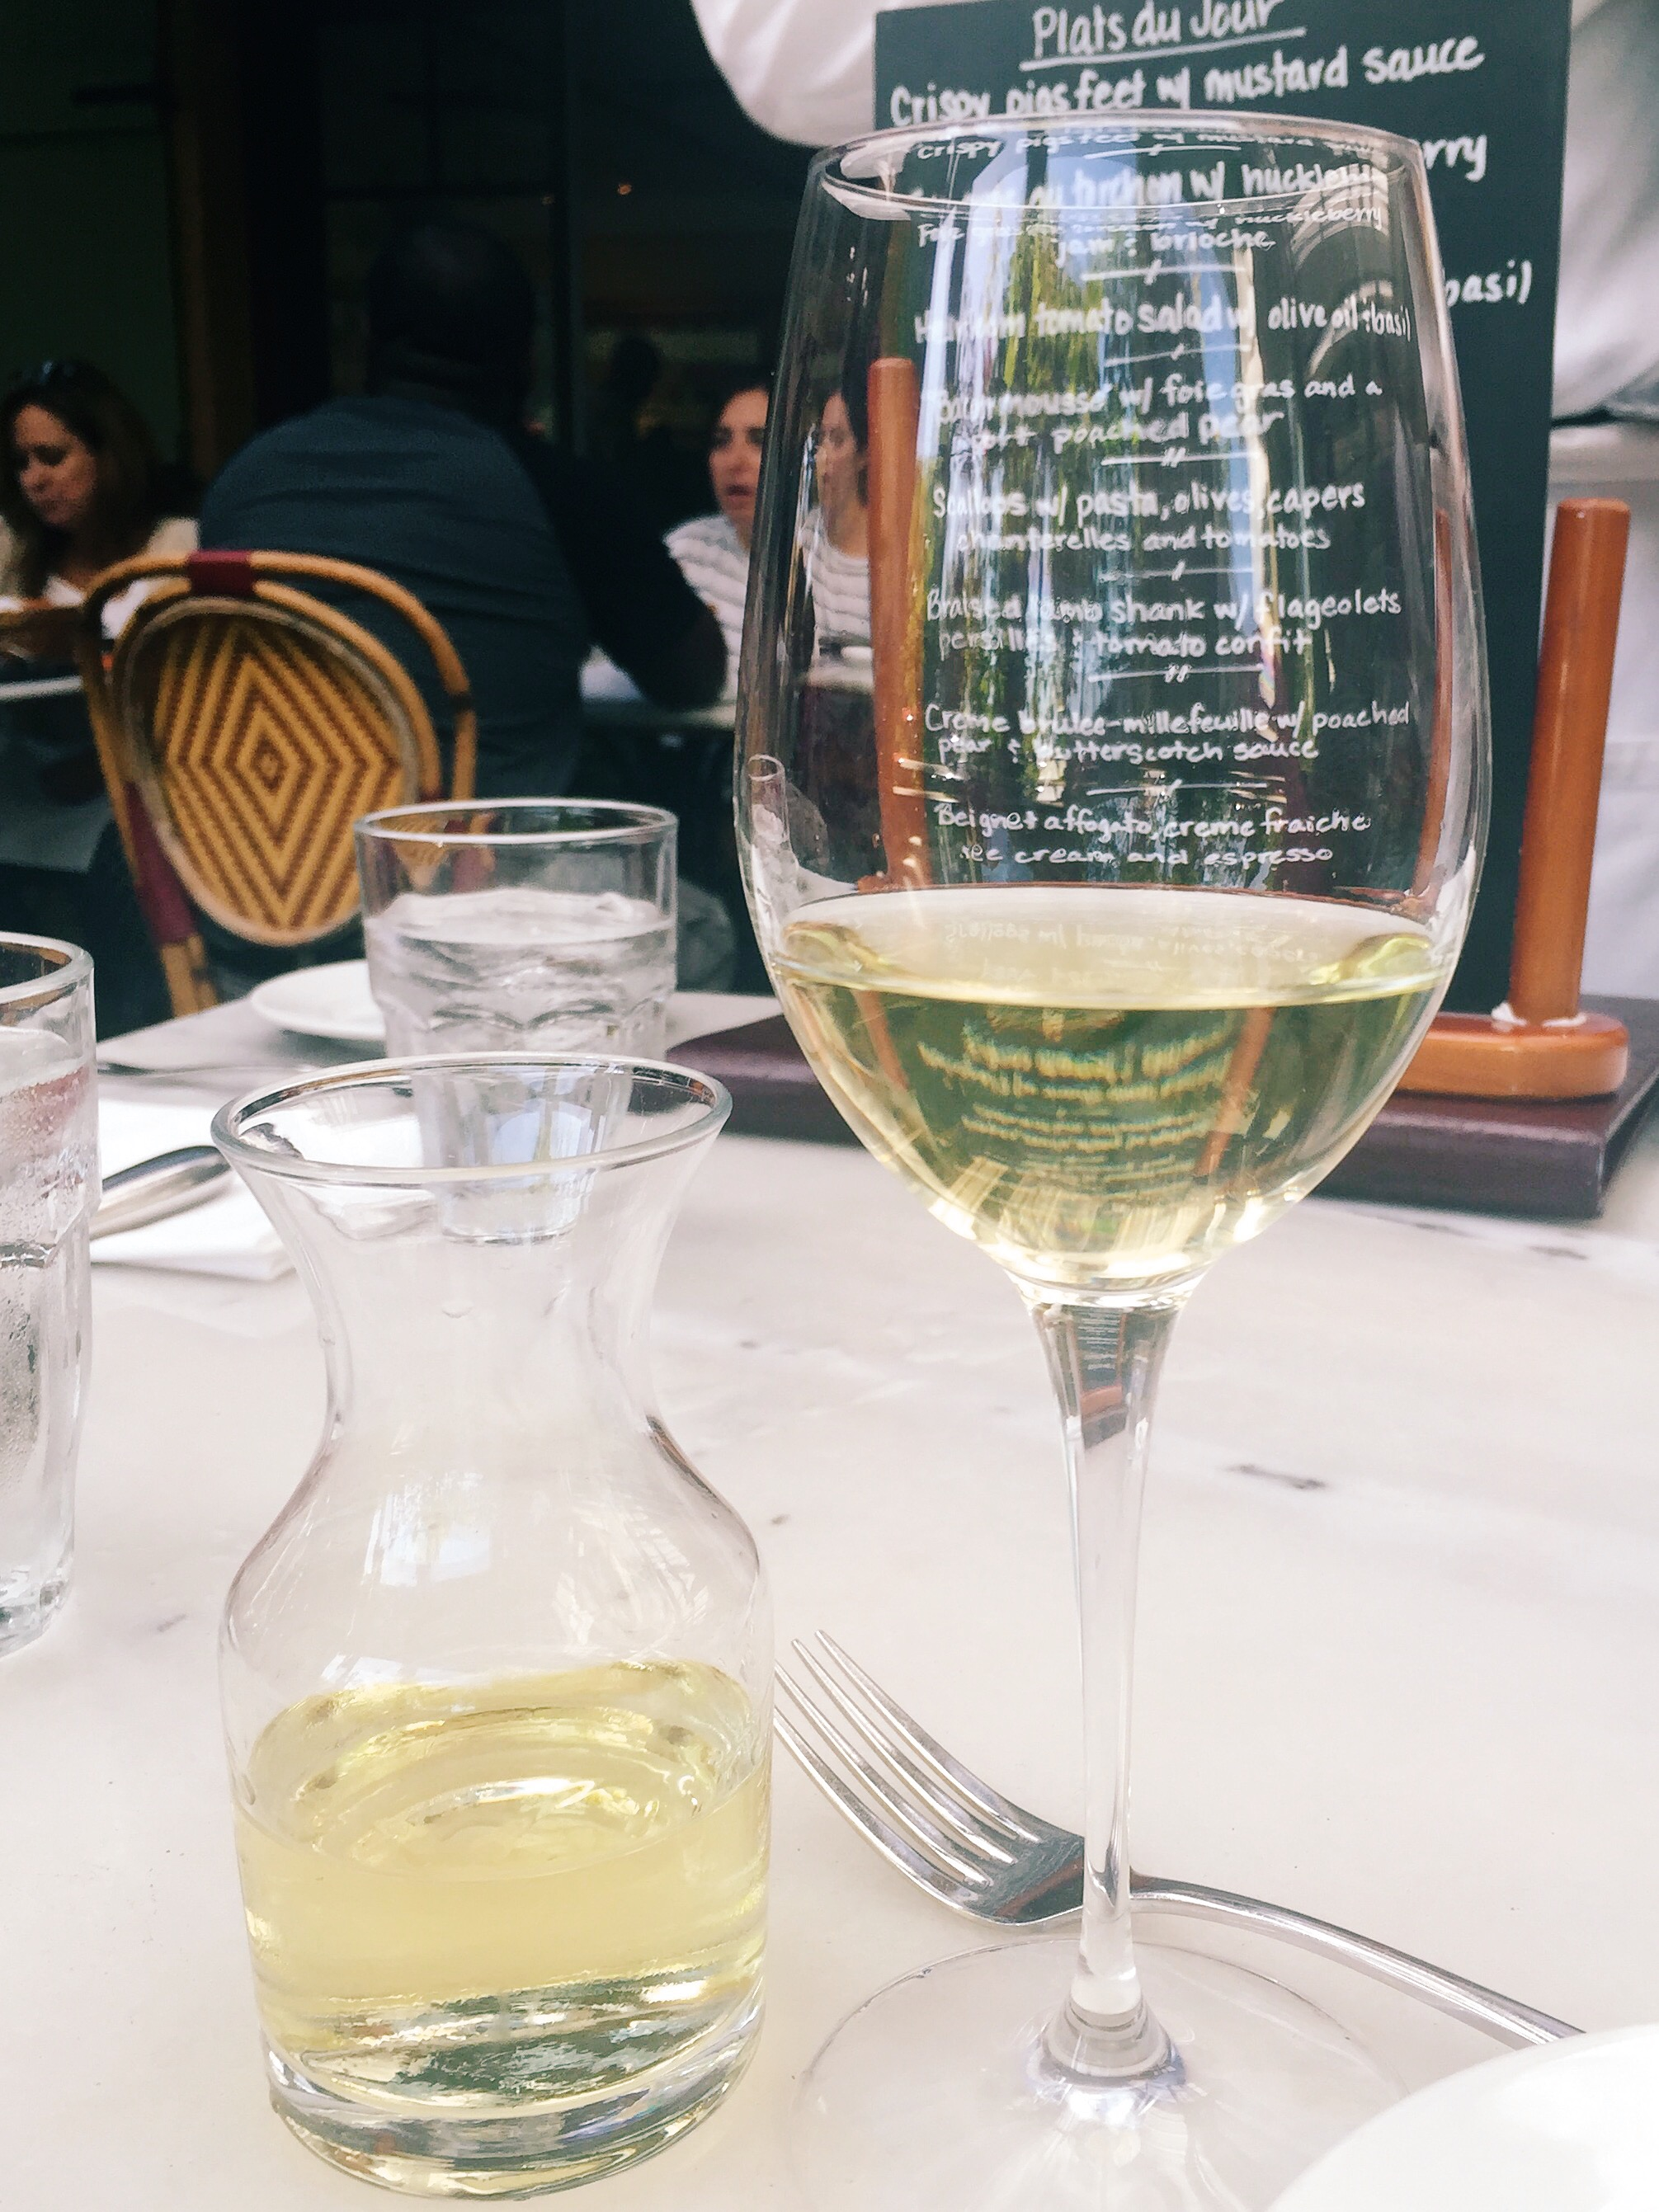 My favorite combo: a glass of excellent white wine and  Bistro Jeanty .